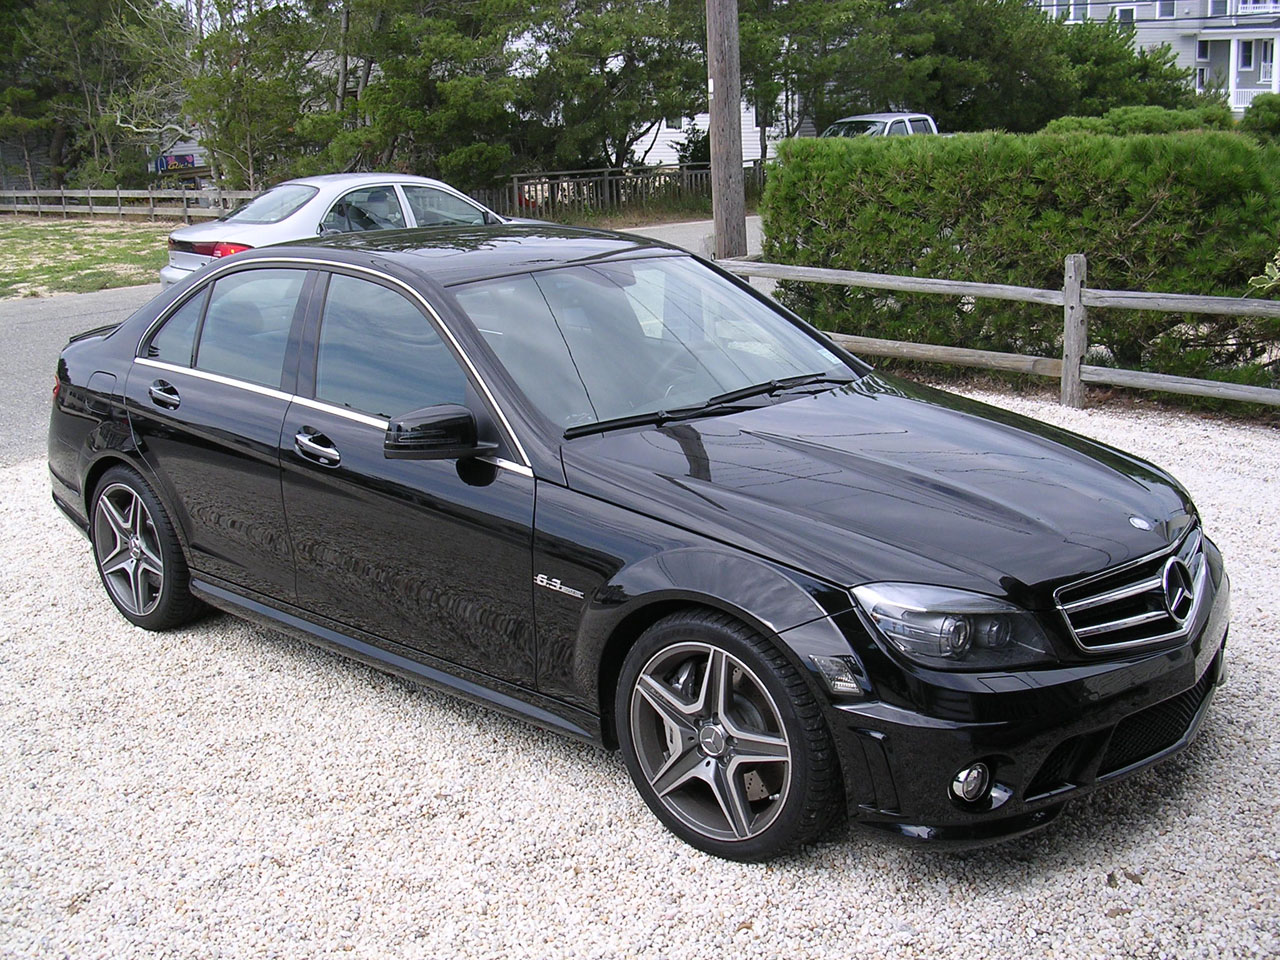 2010 mercedes benz c63 amg eurocharged 1 4 mile trap for 2010 mercedes benz c63 amg